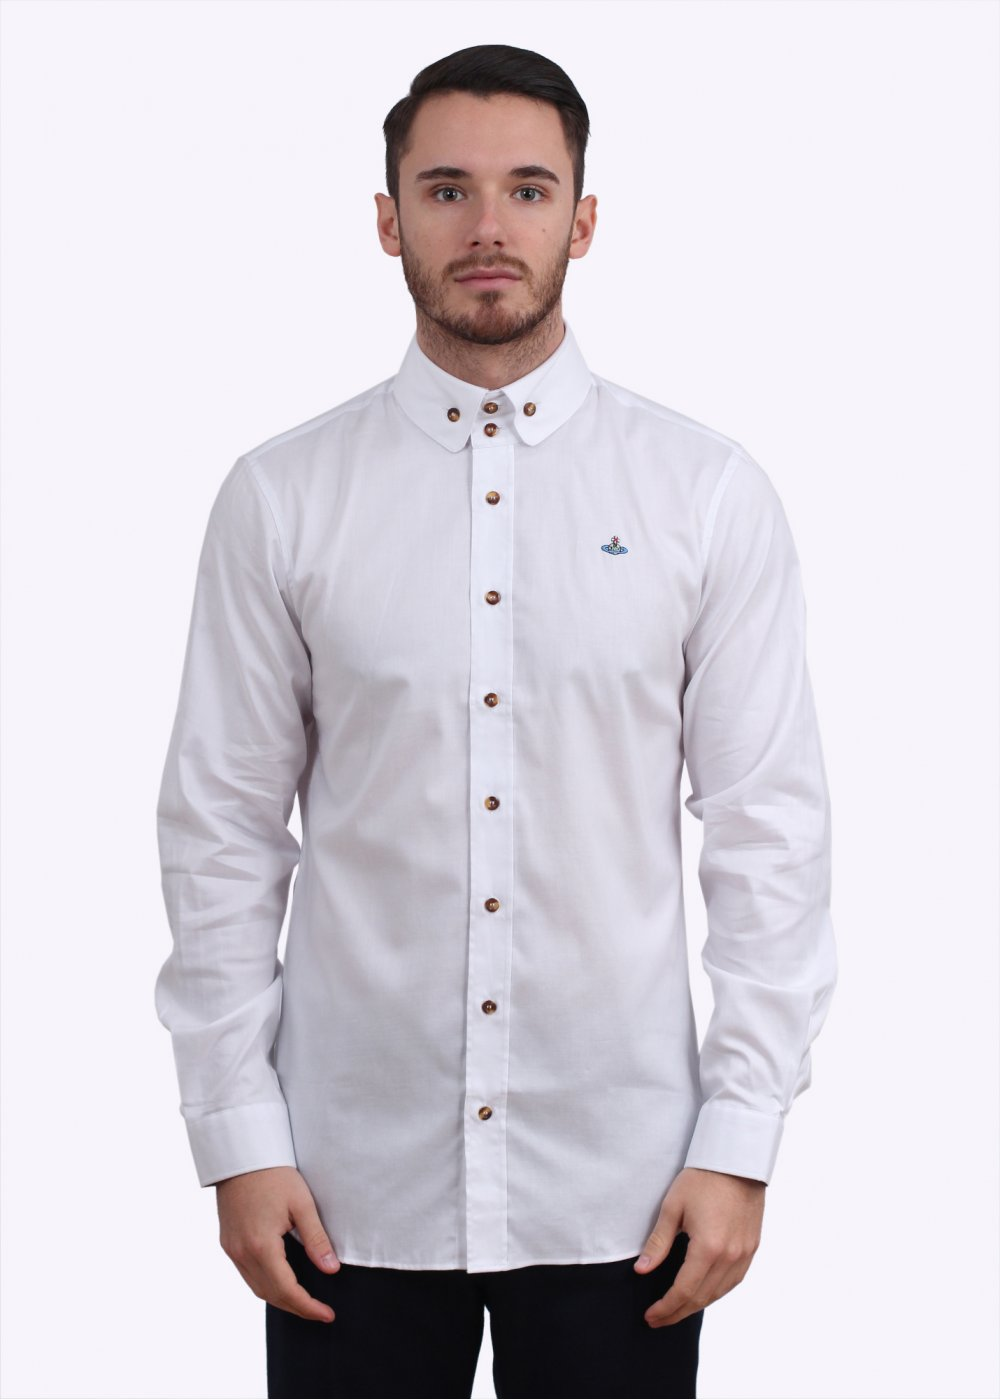 Vivienne westwood 2 button collar shirt white for 3 button shirt collar